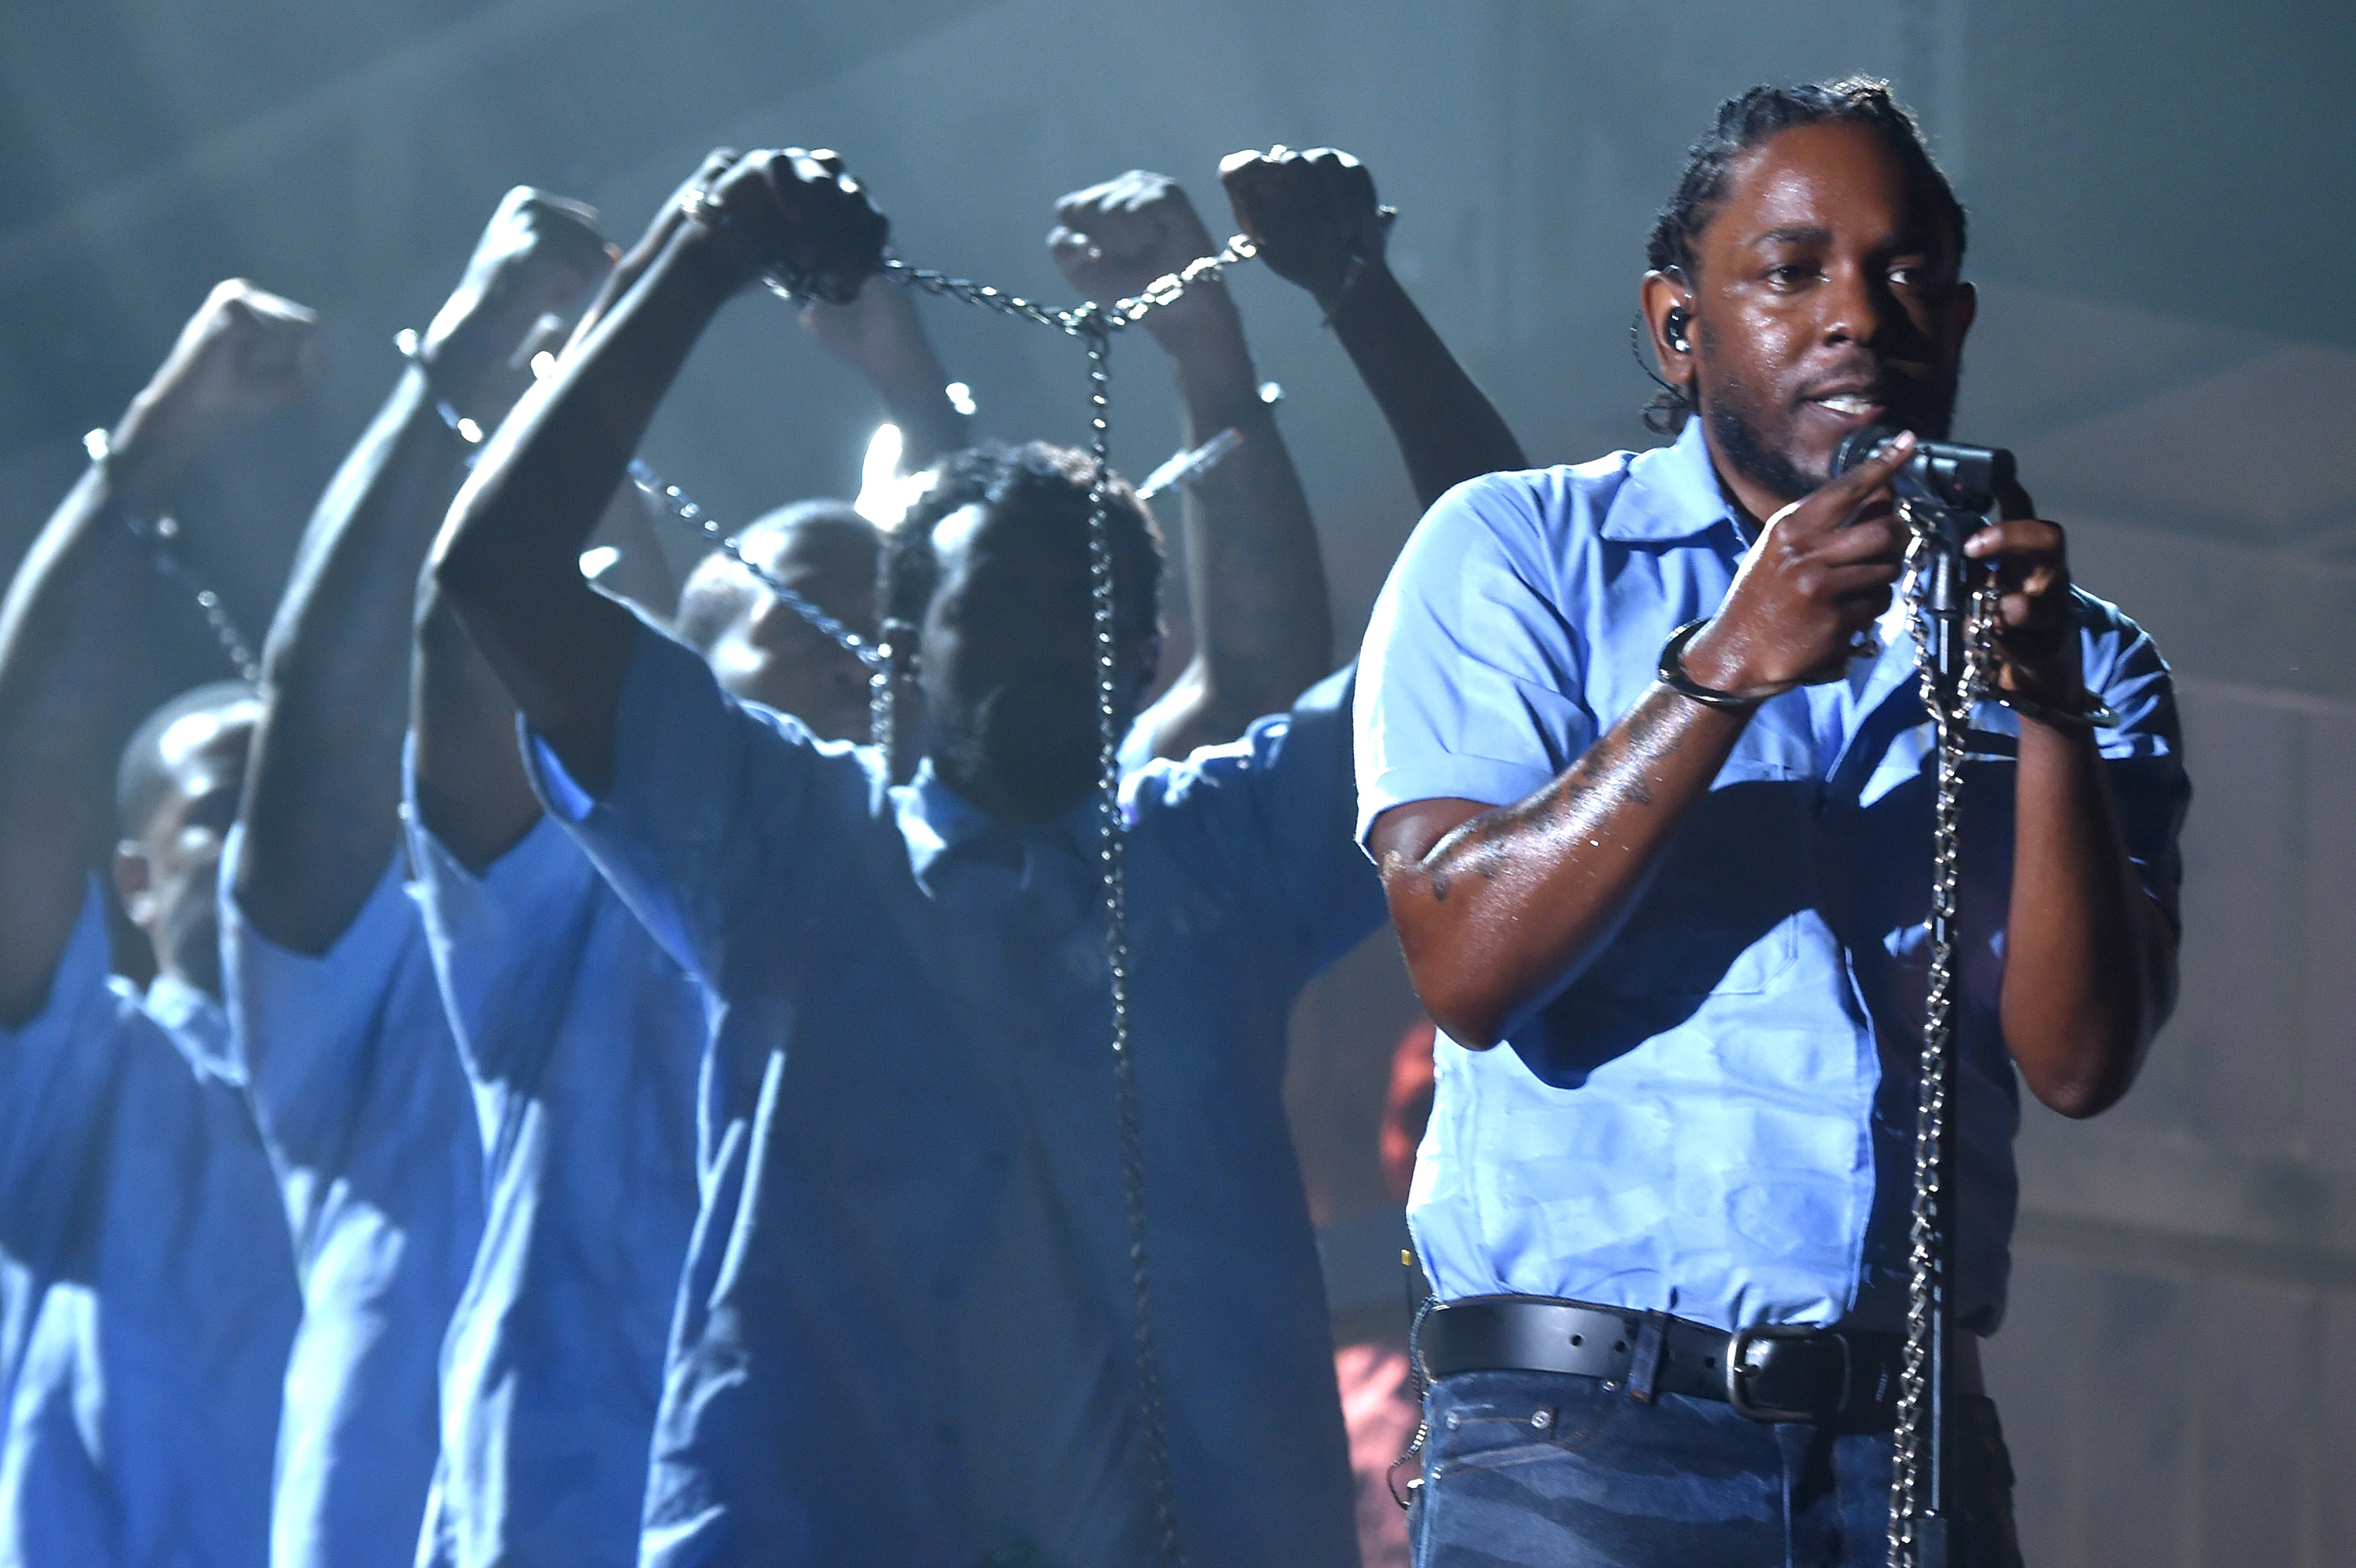 the power of words in complexion a song by kendrick lamar Lyrics to kendrick lamar how much a dollar cost:  song meanings and biographies  how much a dollar cost by kendrick lamar music video.